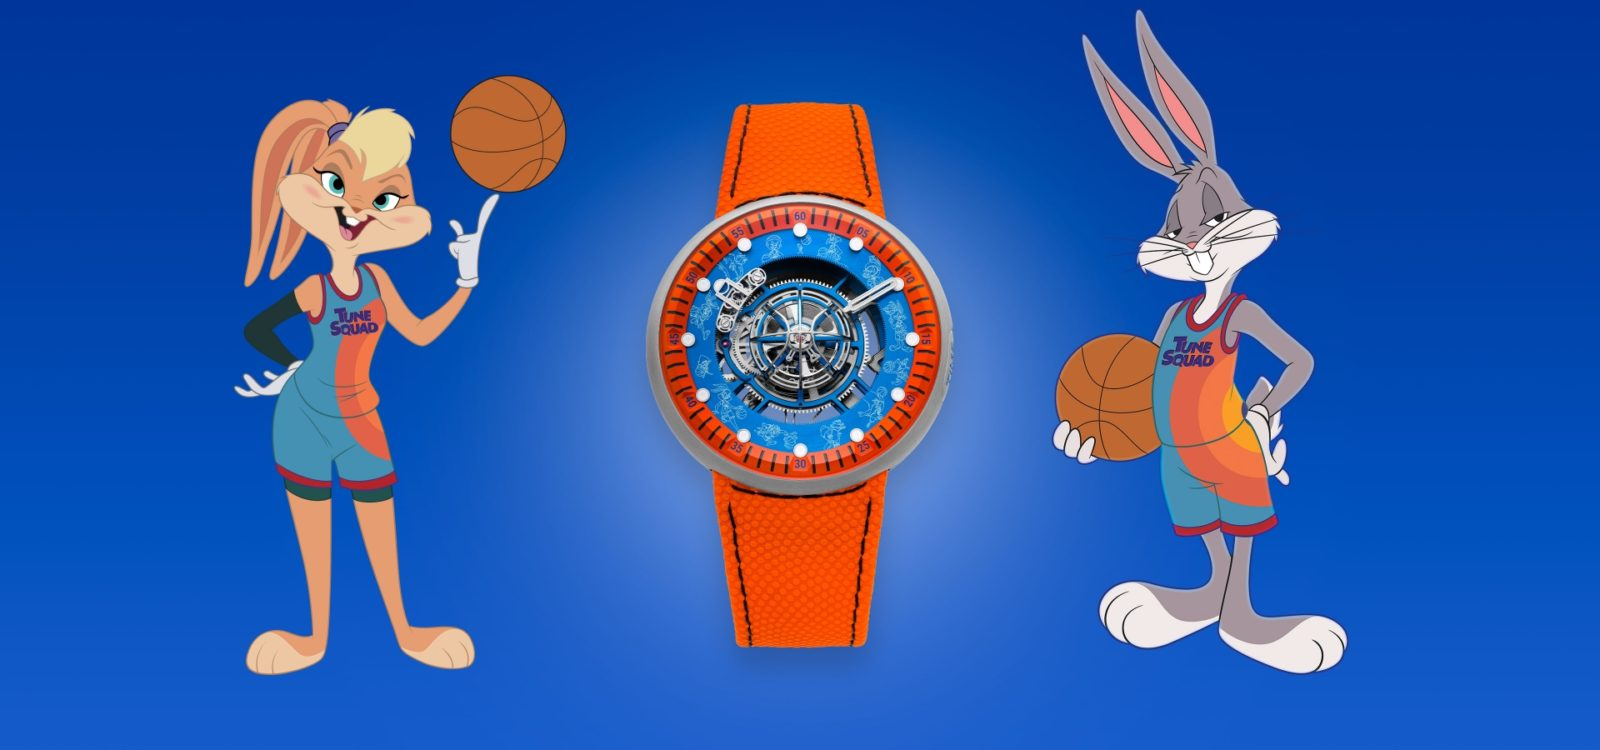 Excited for Space Jam: The New Legacy? Look out for this limited edition watch from Kross Studio